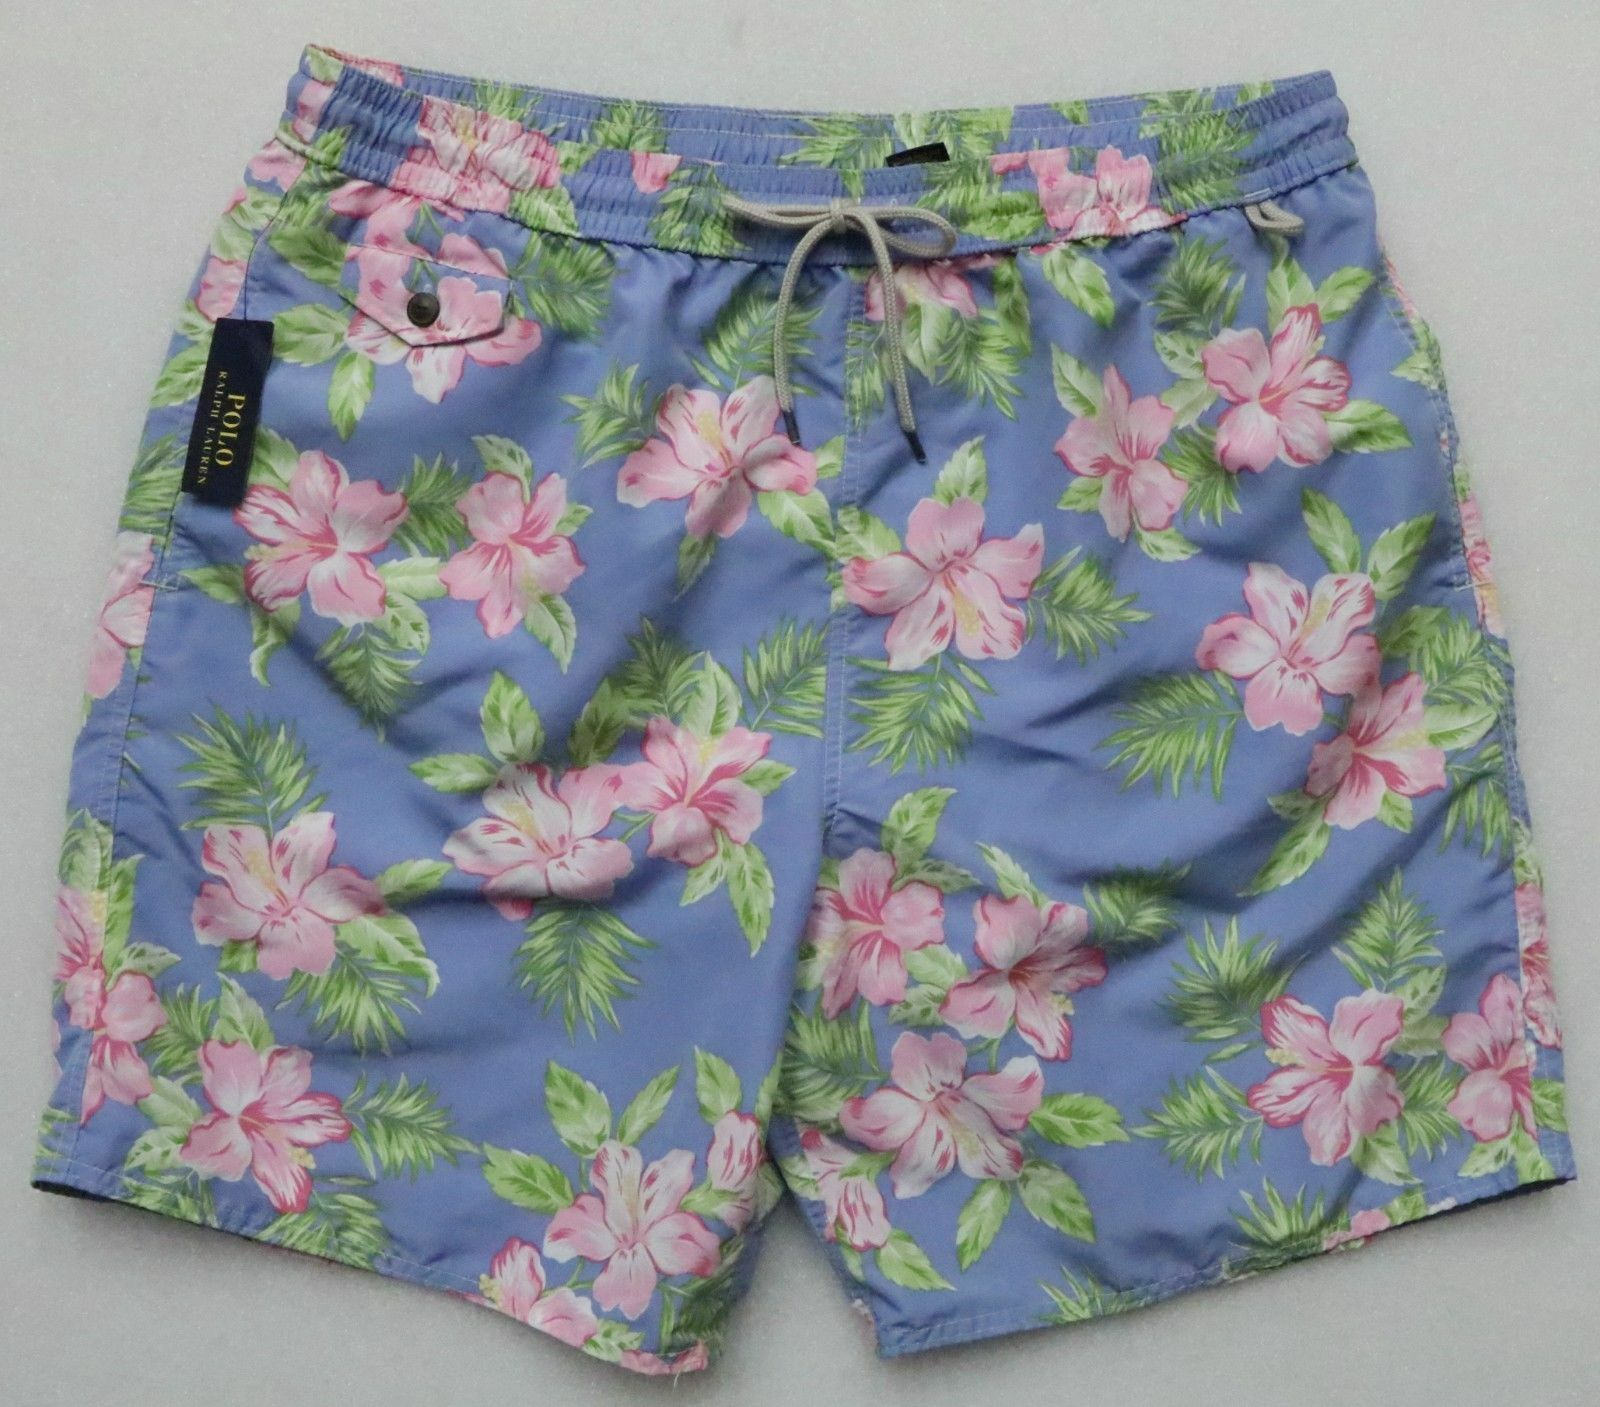 POLO RALPH LAUREN CLASSICS MEN'S 2XB SWIM TRUNKS SUIT SWIMMING PASTEL HIBISCUS